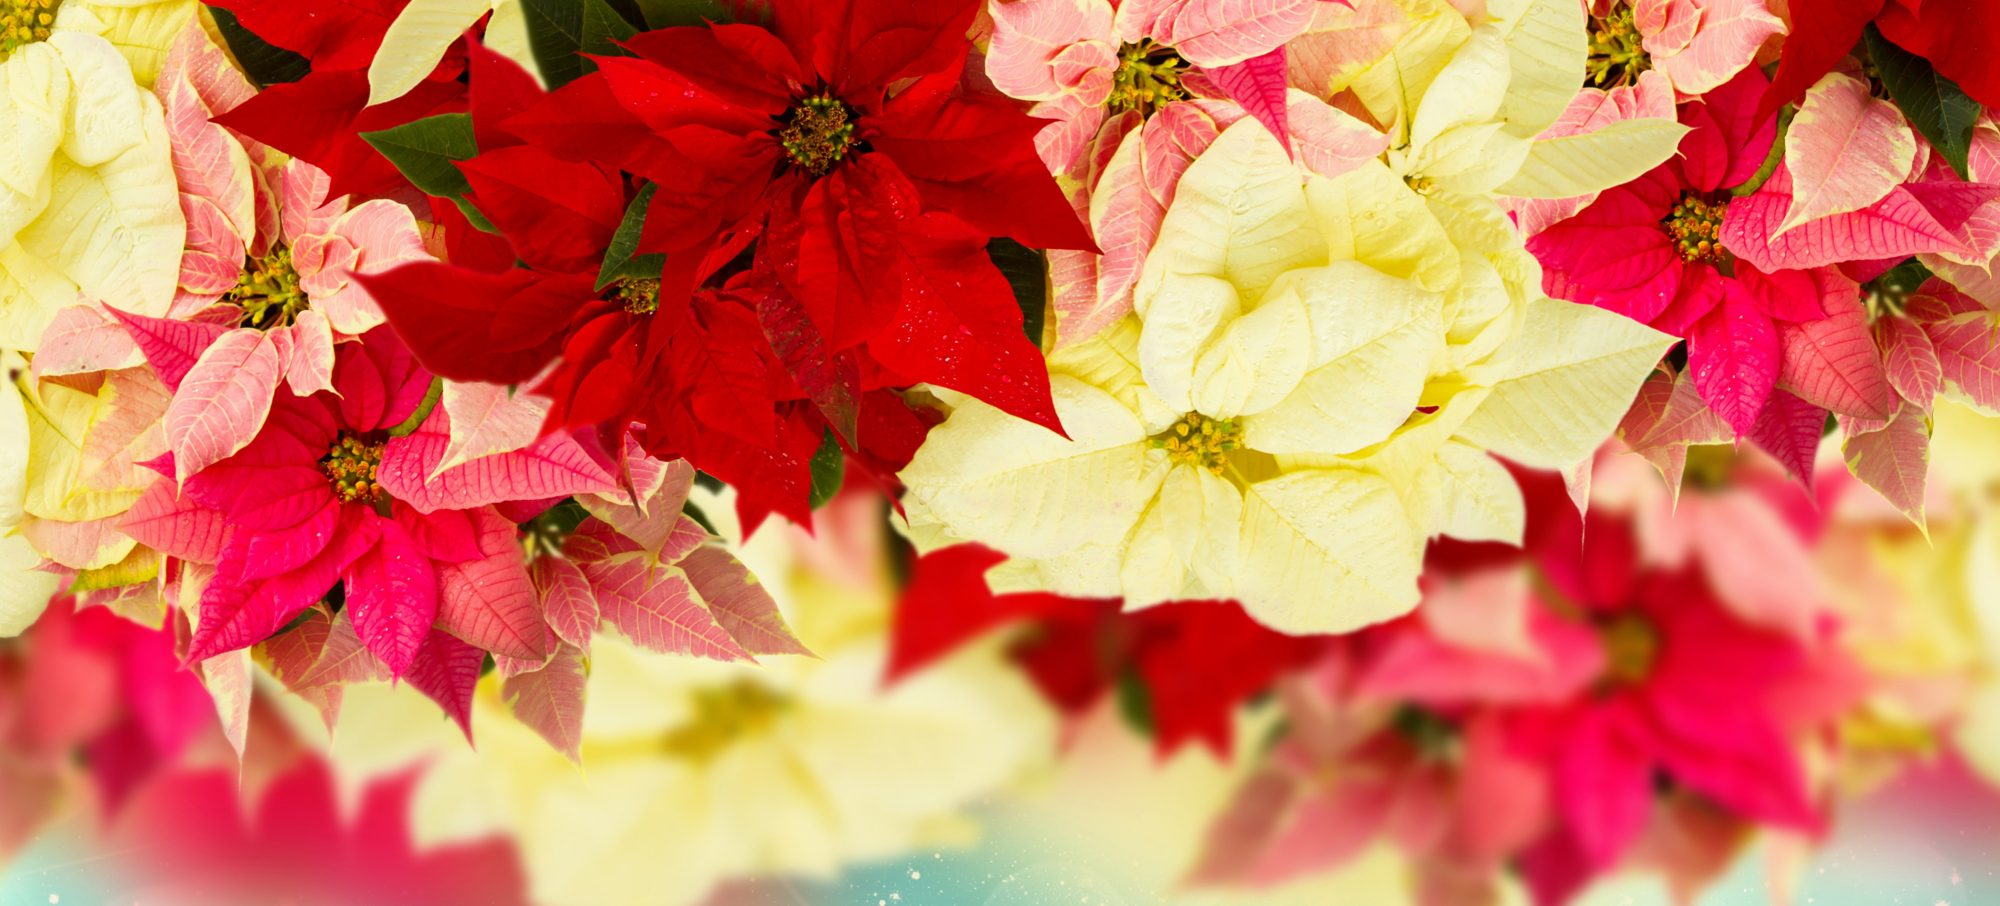 Garden Club Poinsettia Fundraiser Under Way